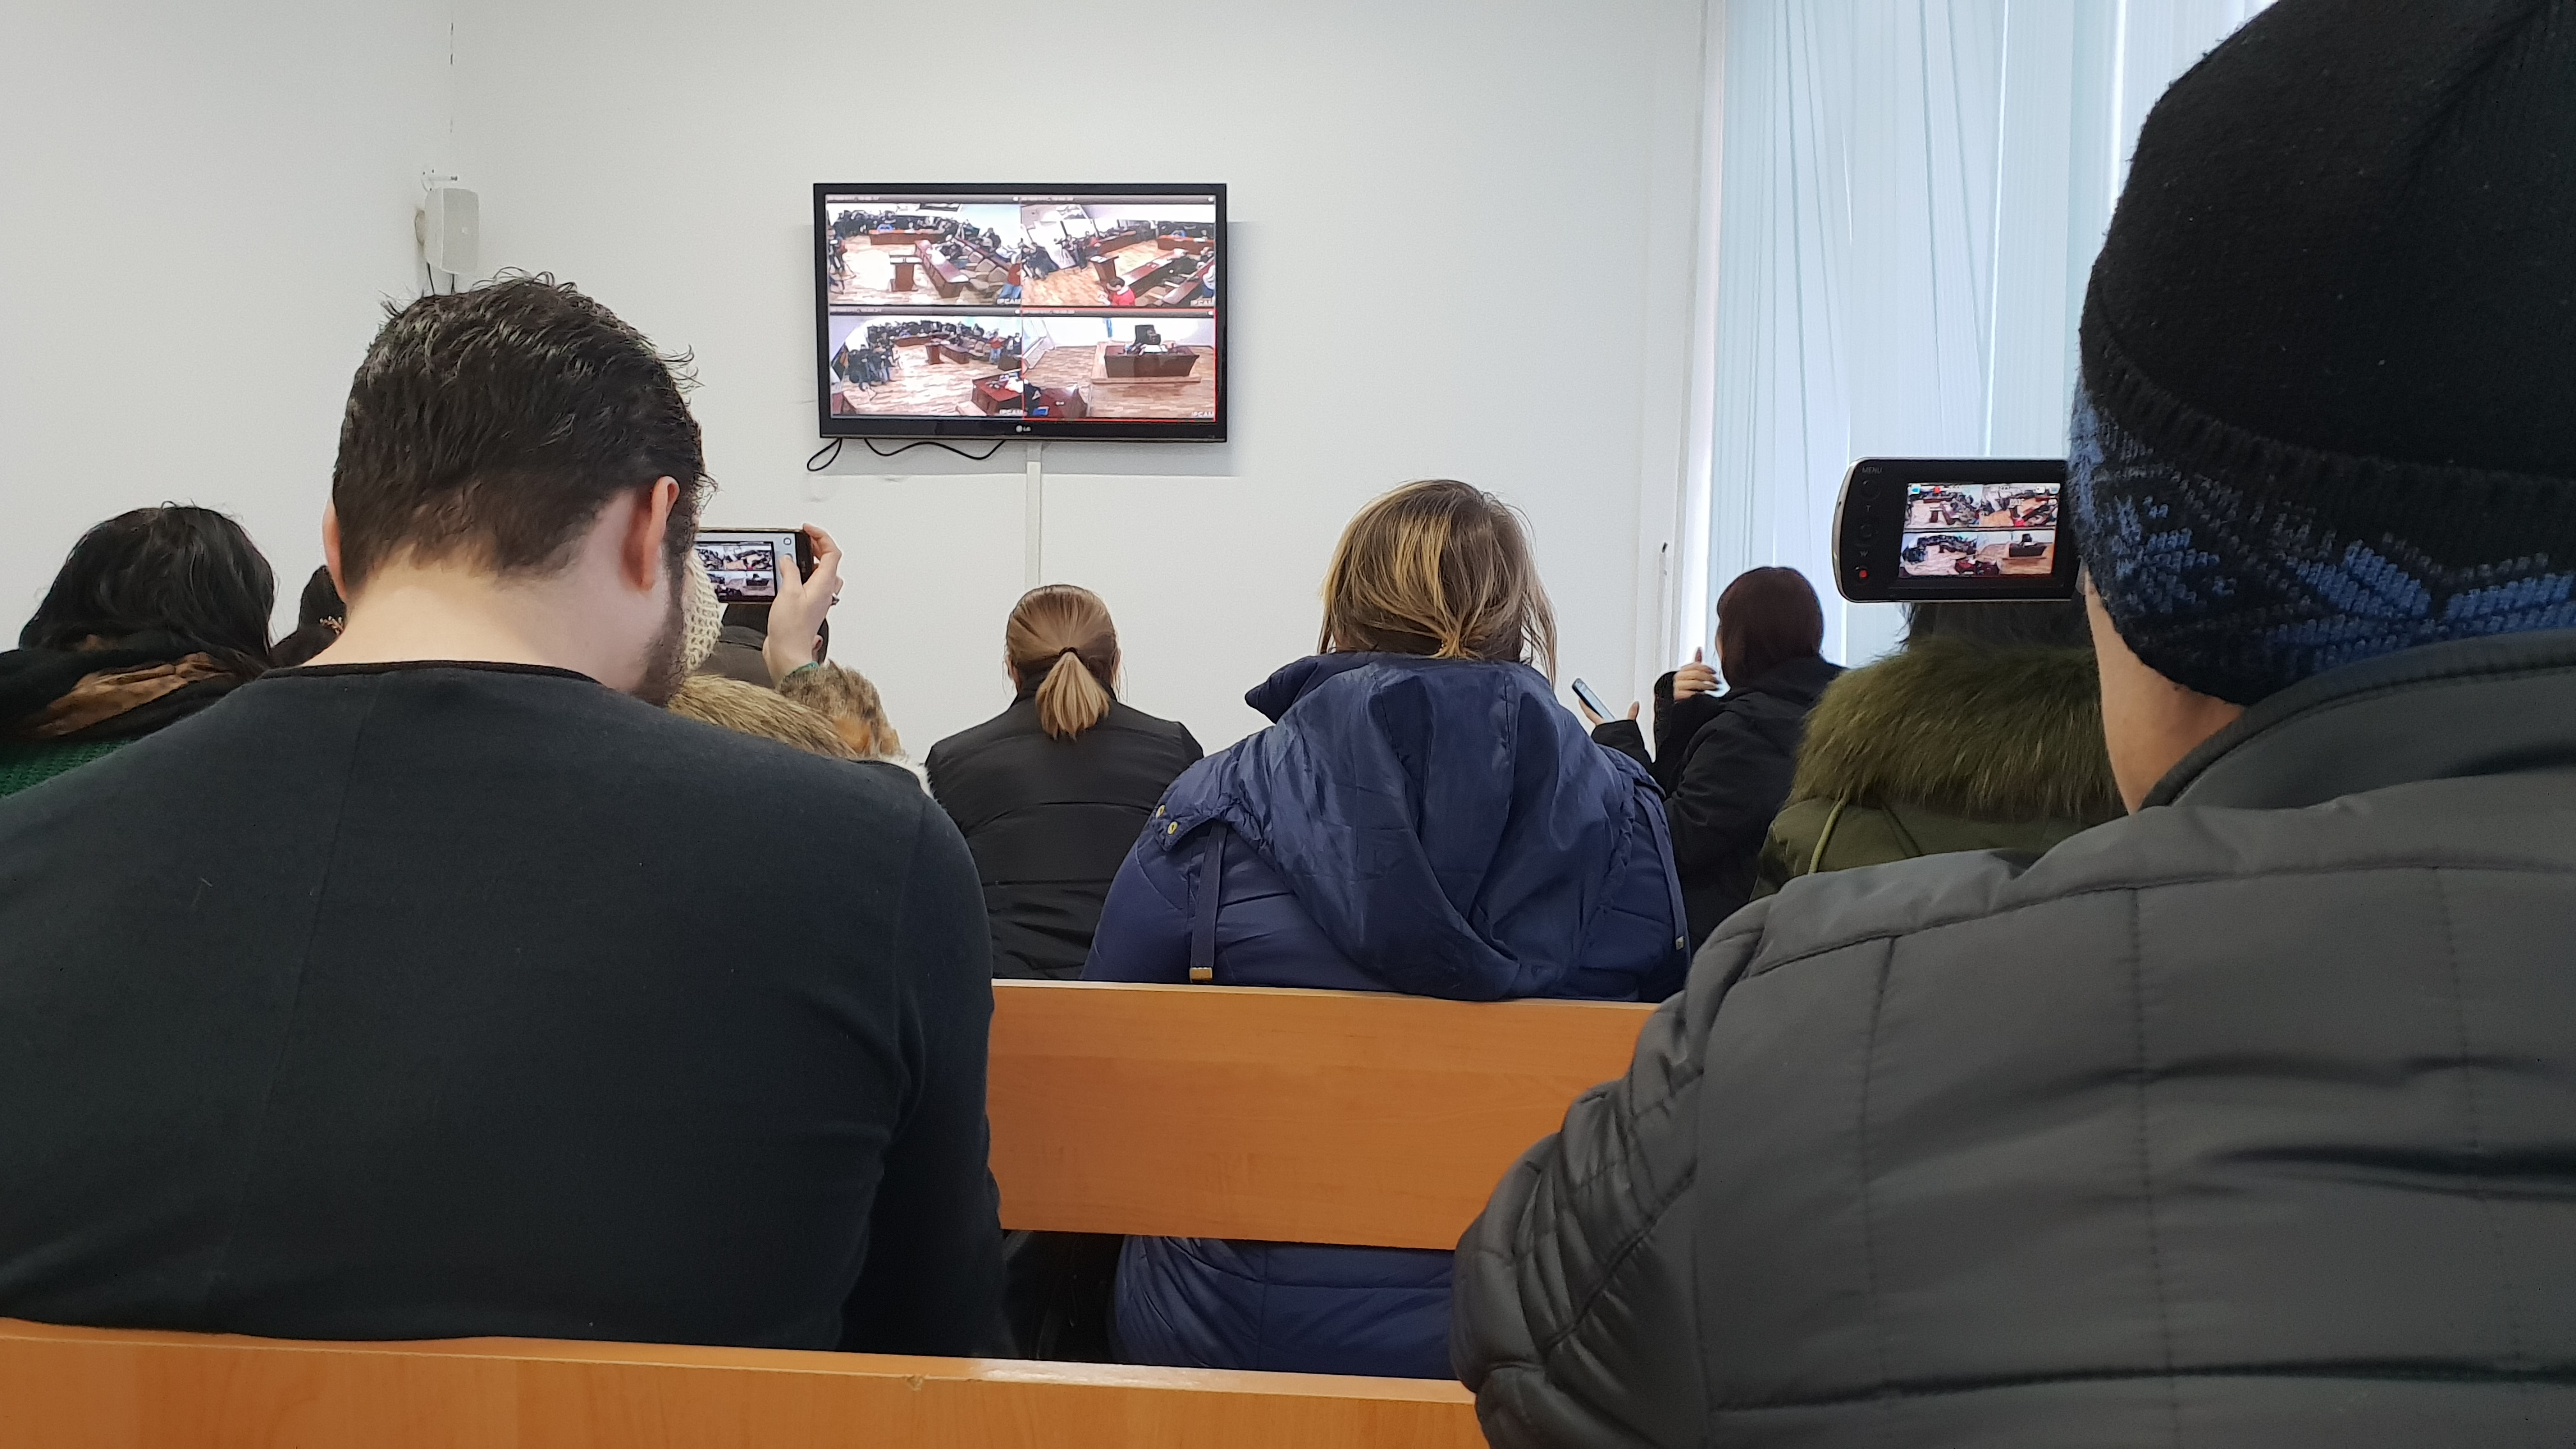 Reporters at the Almaty courthouse watching the verdict via a video link-up. (Photo: Almaz Kumenov/Eurasianet)